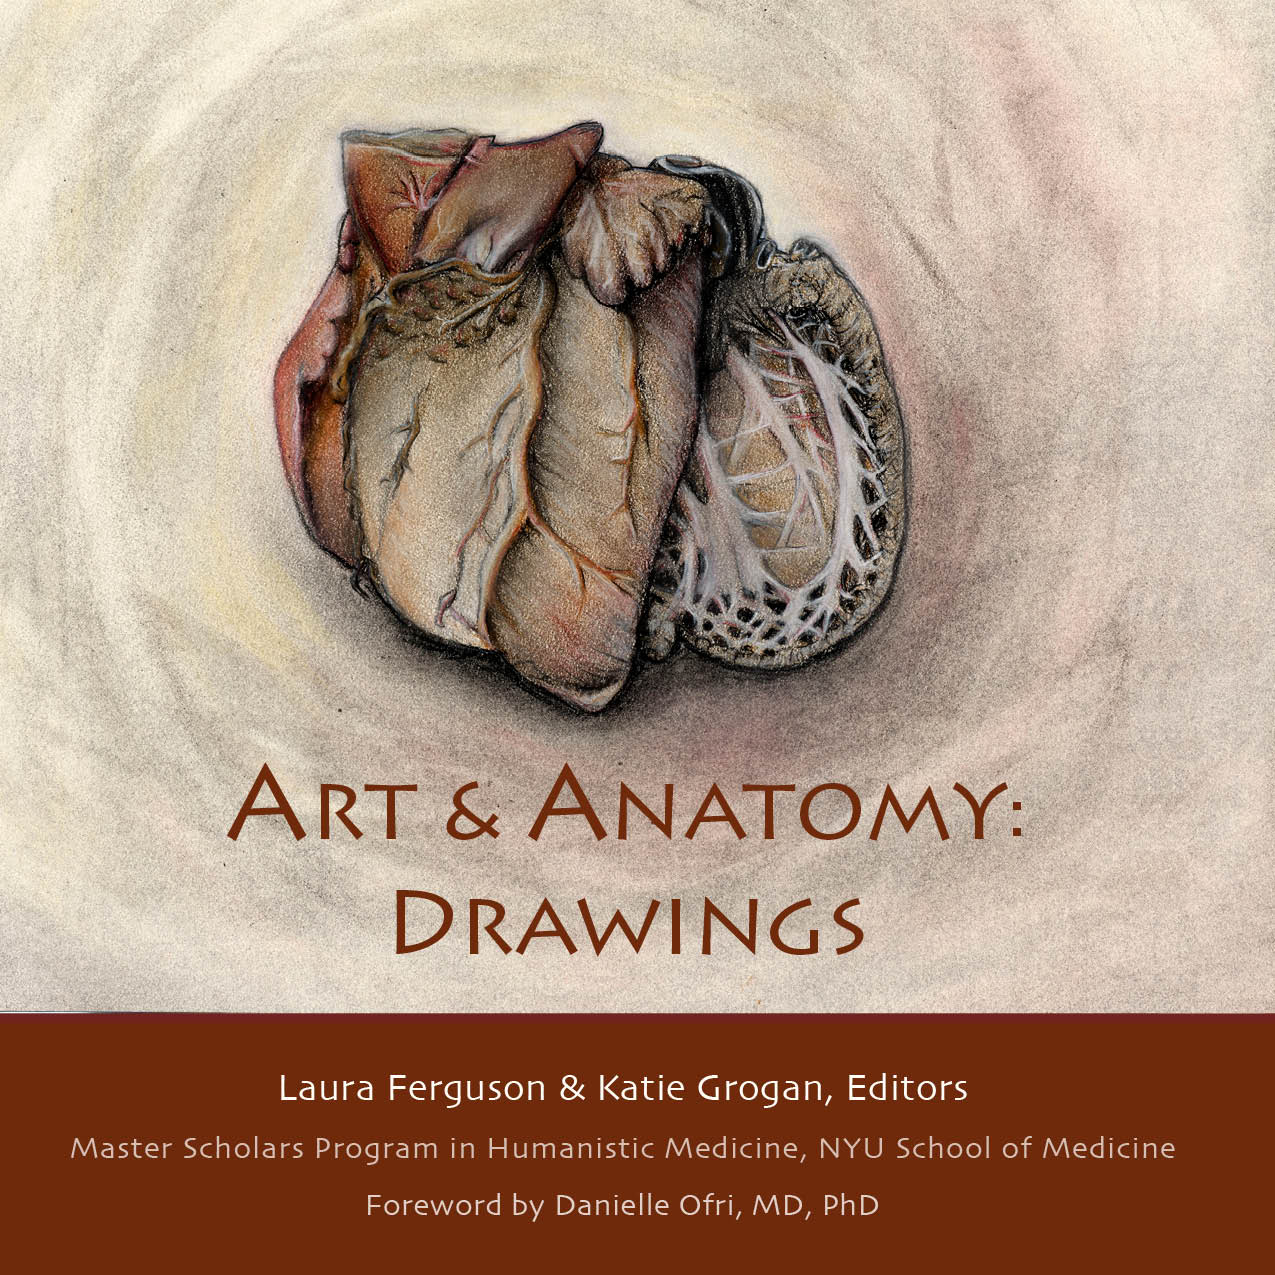 - What began with one innovative class, and my belief in the value of drawing in the context of medicine, is now in its 11th year and becoming a model for other medical schools to follow. Art & Anatomy has inspired a book, a journal article, a short film, a podcast interview, and more:Art & Anatomy: Drawings Laura Ferguson and Katie Grogan, eds., Foreword by Dr. Danielle Ofri with a student's perspective (and cover art) by Hannah BernsteinPublished by University of California Medical Humanities Press 2018Read